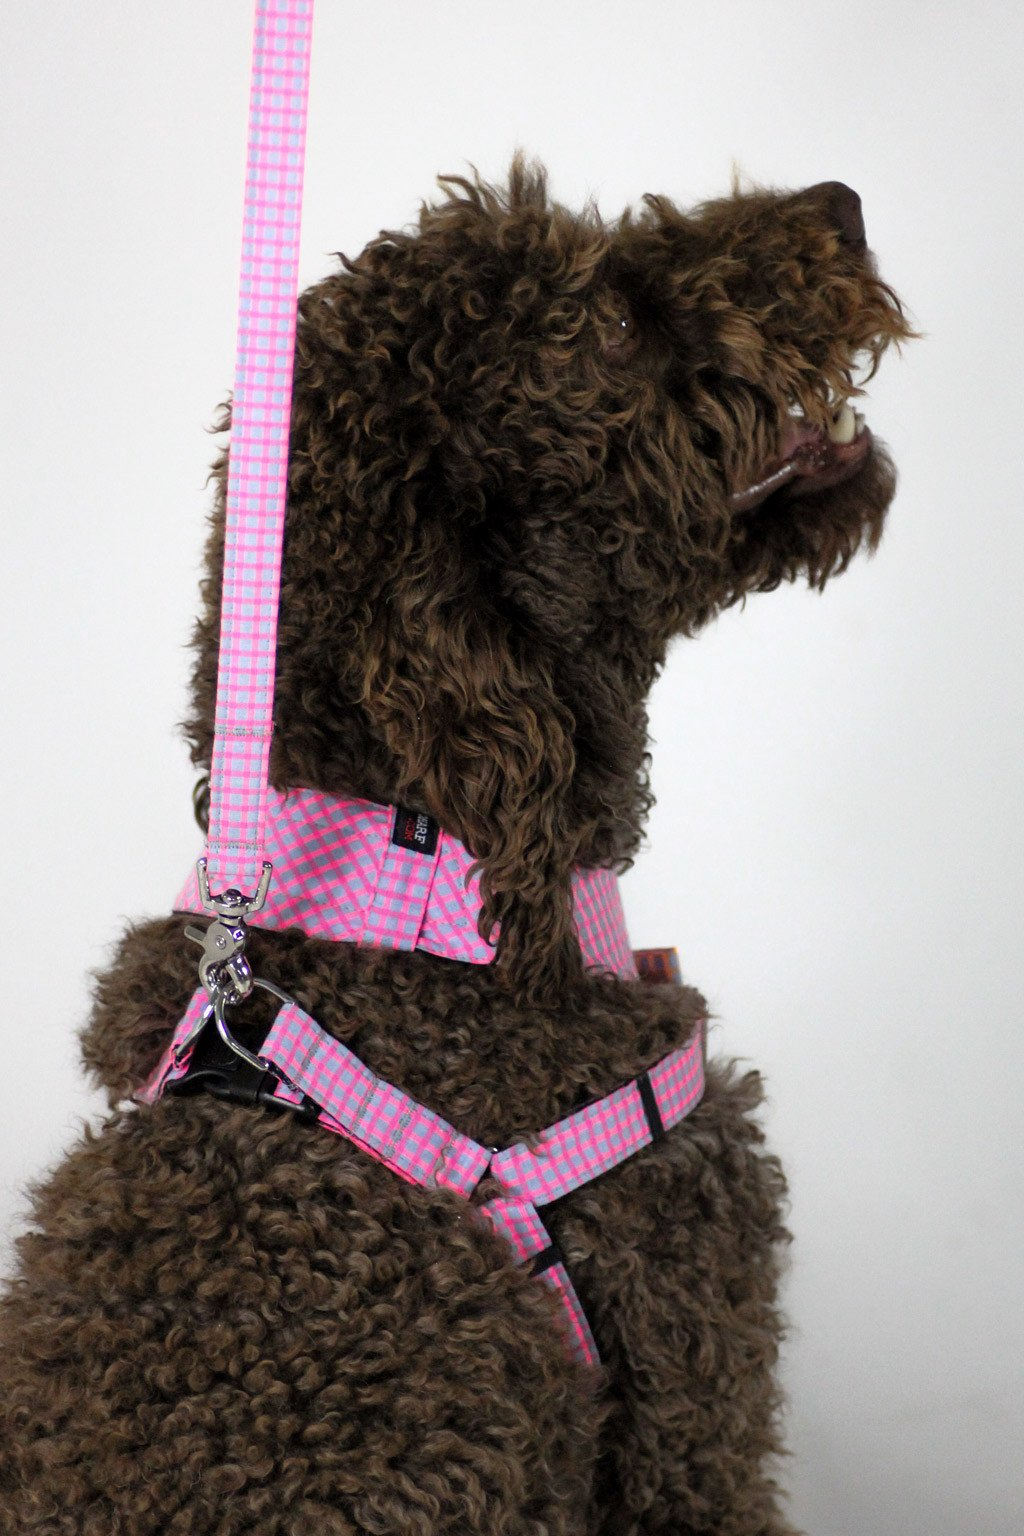 Dog Bow-tie Harness - Pink Jeans